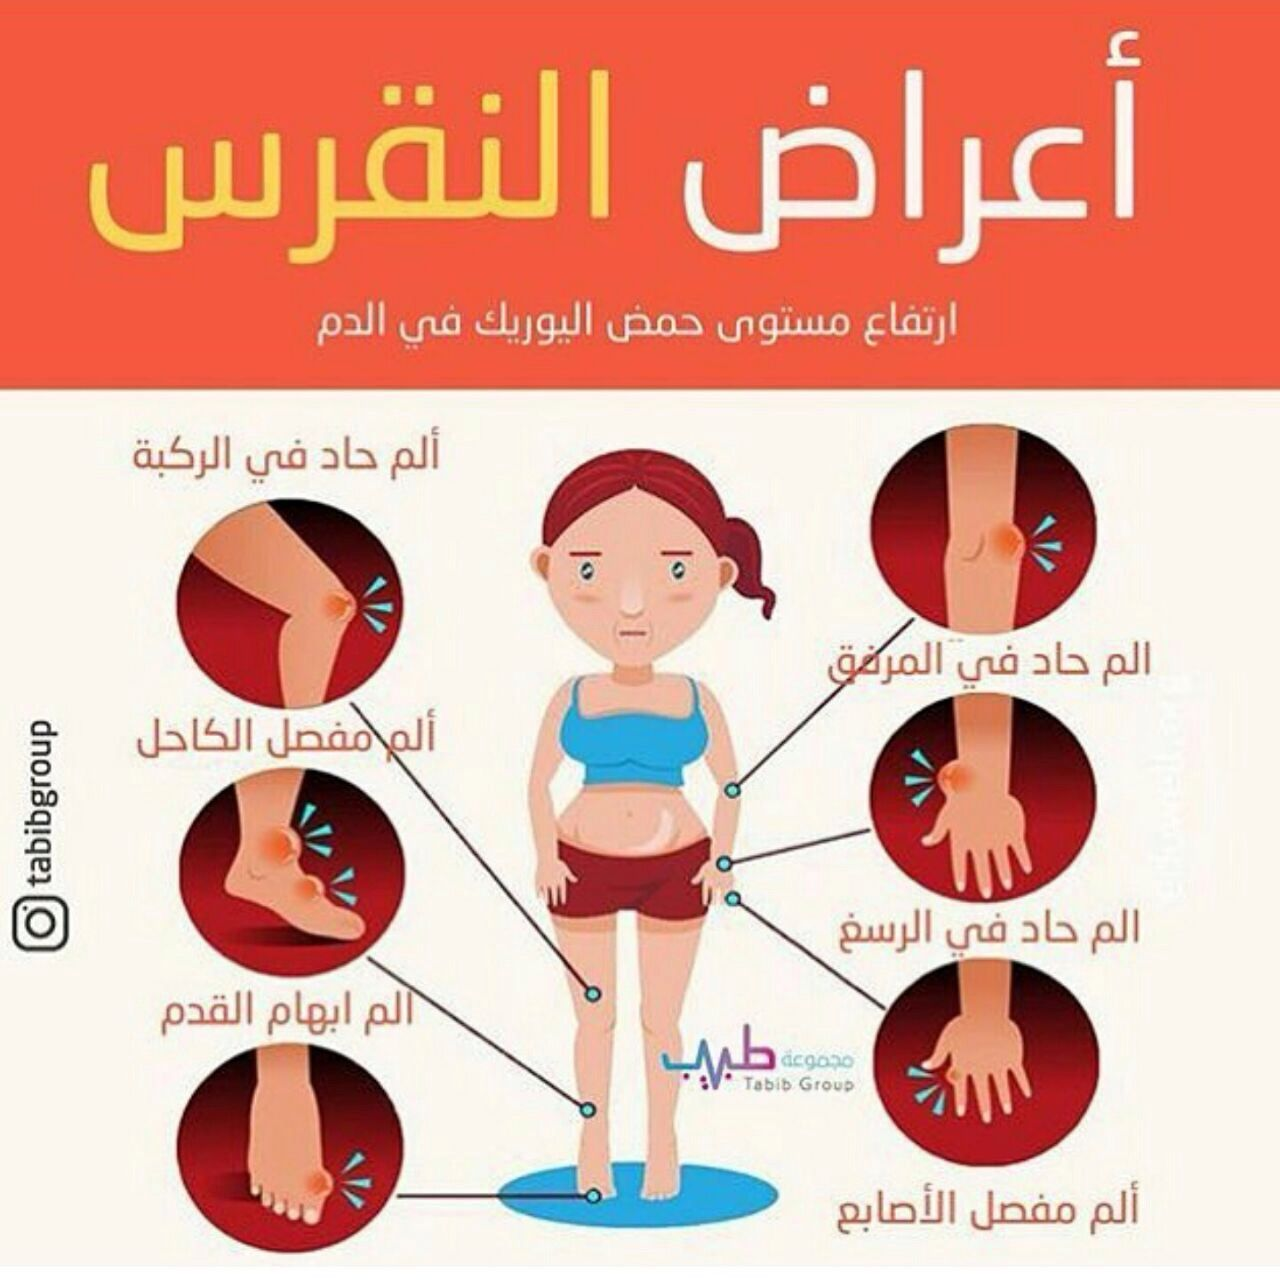 Pin By زهرة علي On معلومات Health Advice Health Info Health Fitness Nutrition